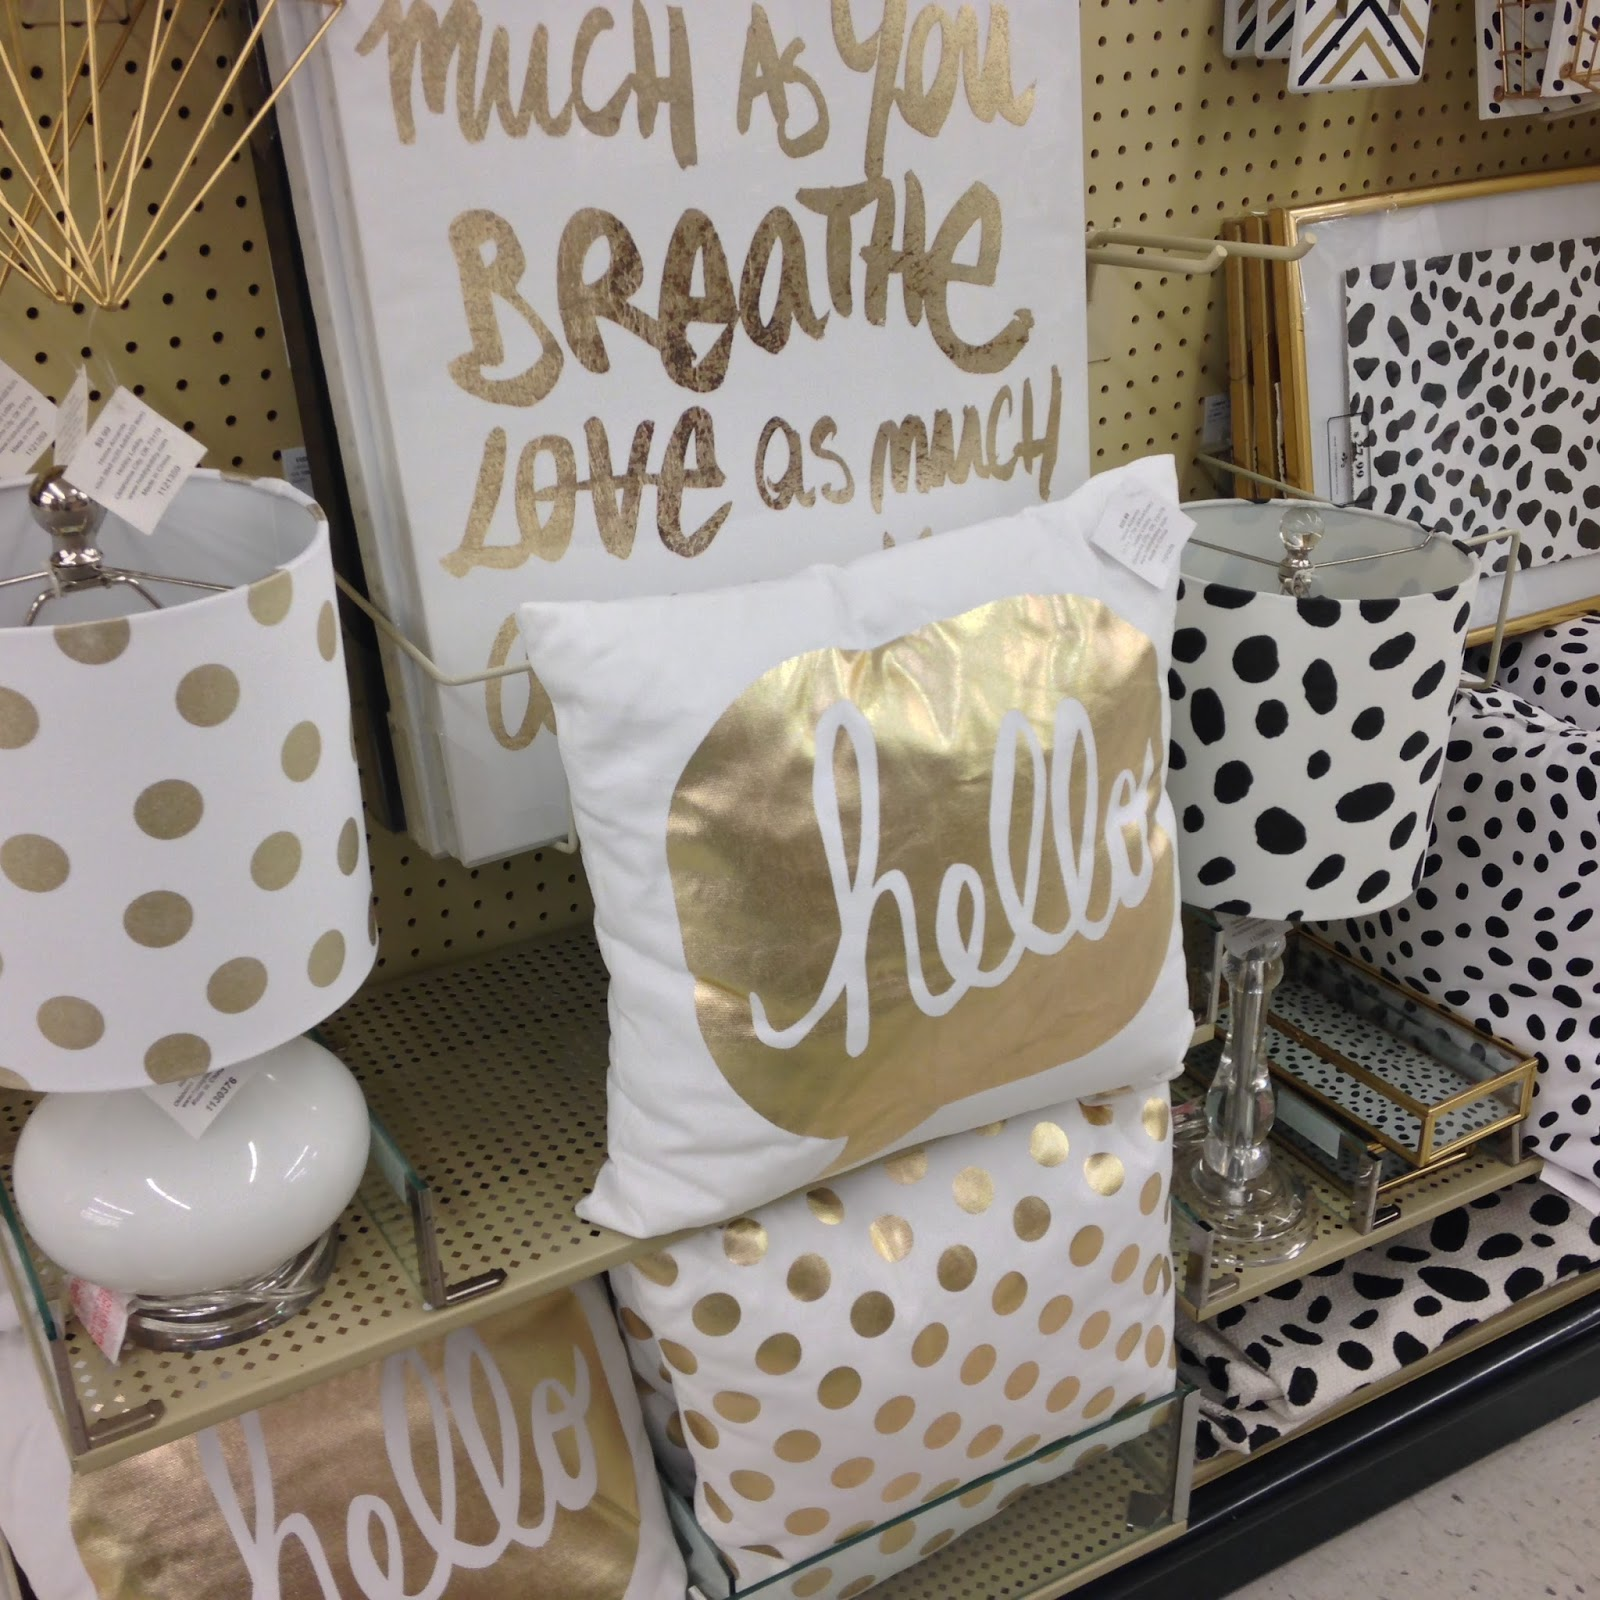 IMG 8027 - Attending Hobby Lobby Pillows Can Be A Disaster If You Forget These 17 Rules